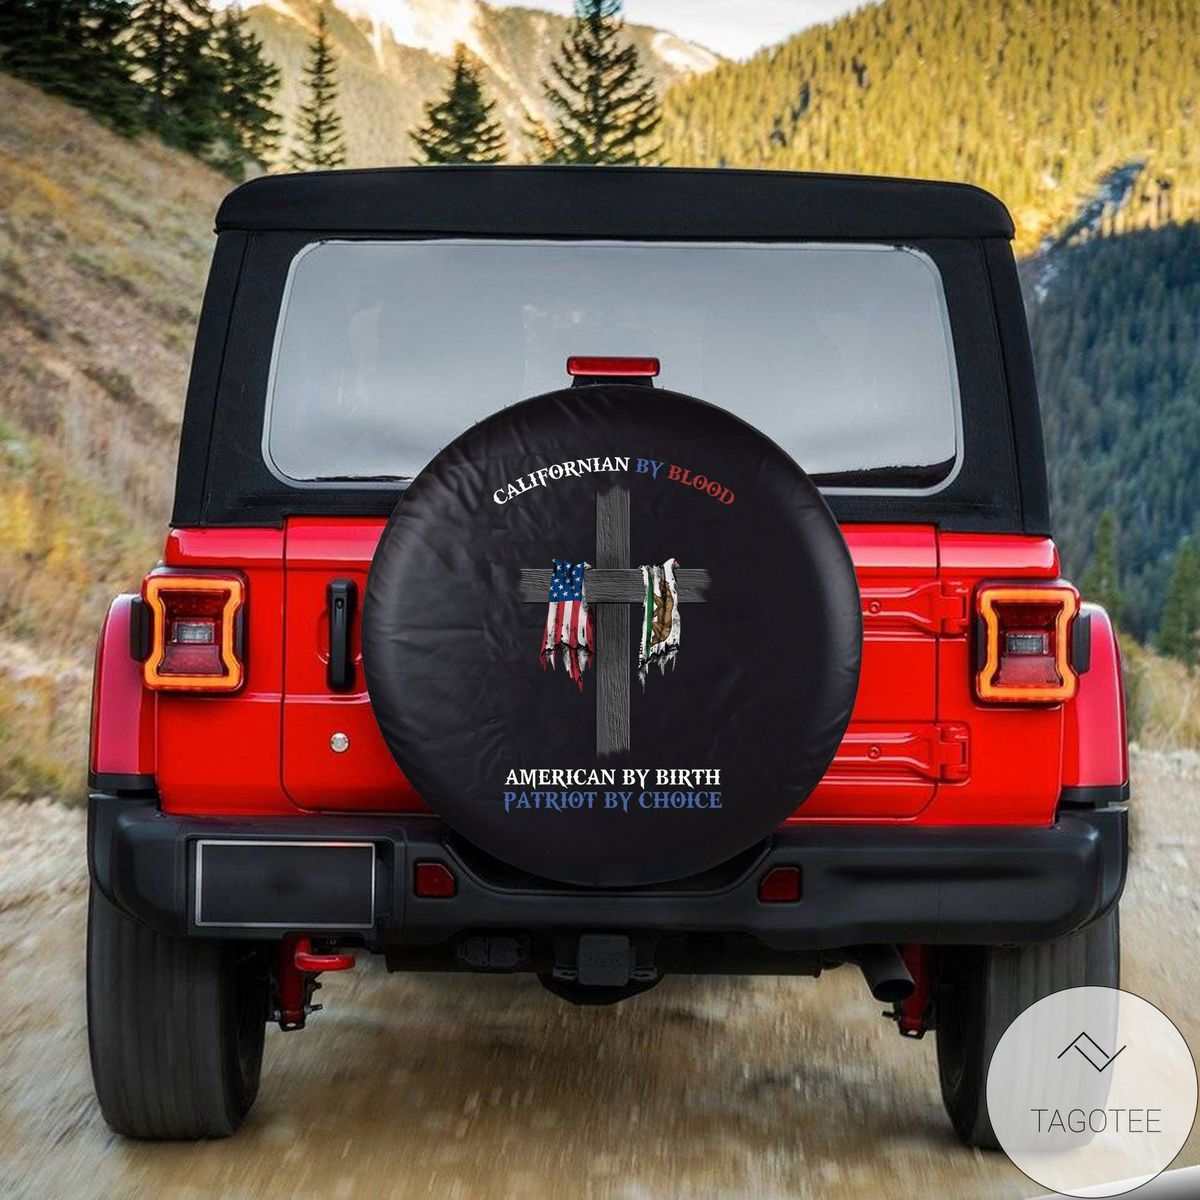 Unisex Californian By Blood American By Birth Spare Tire Cover